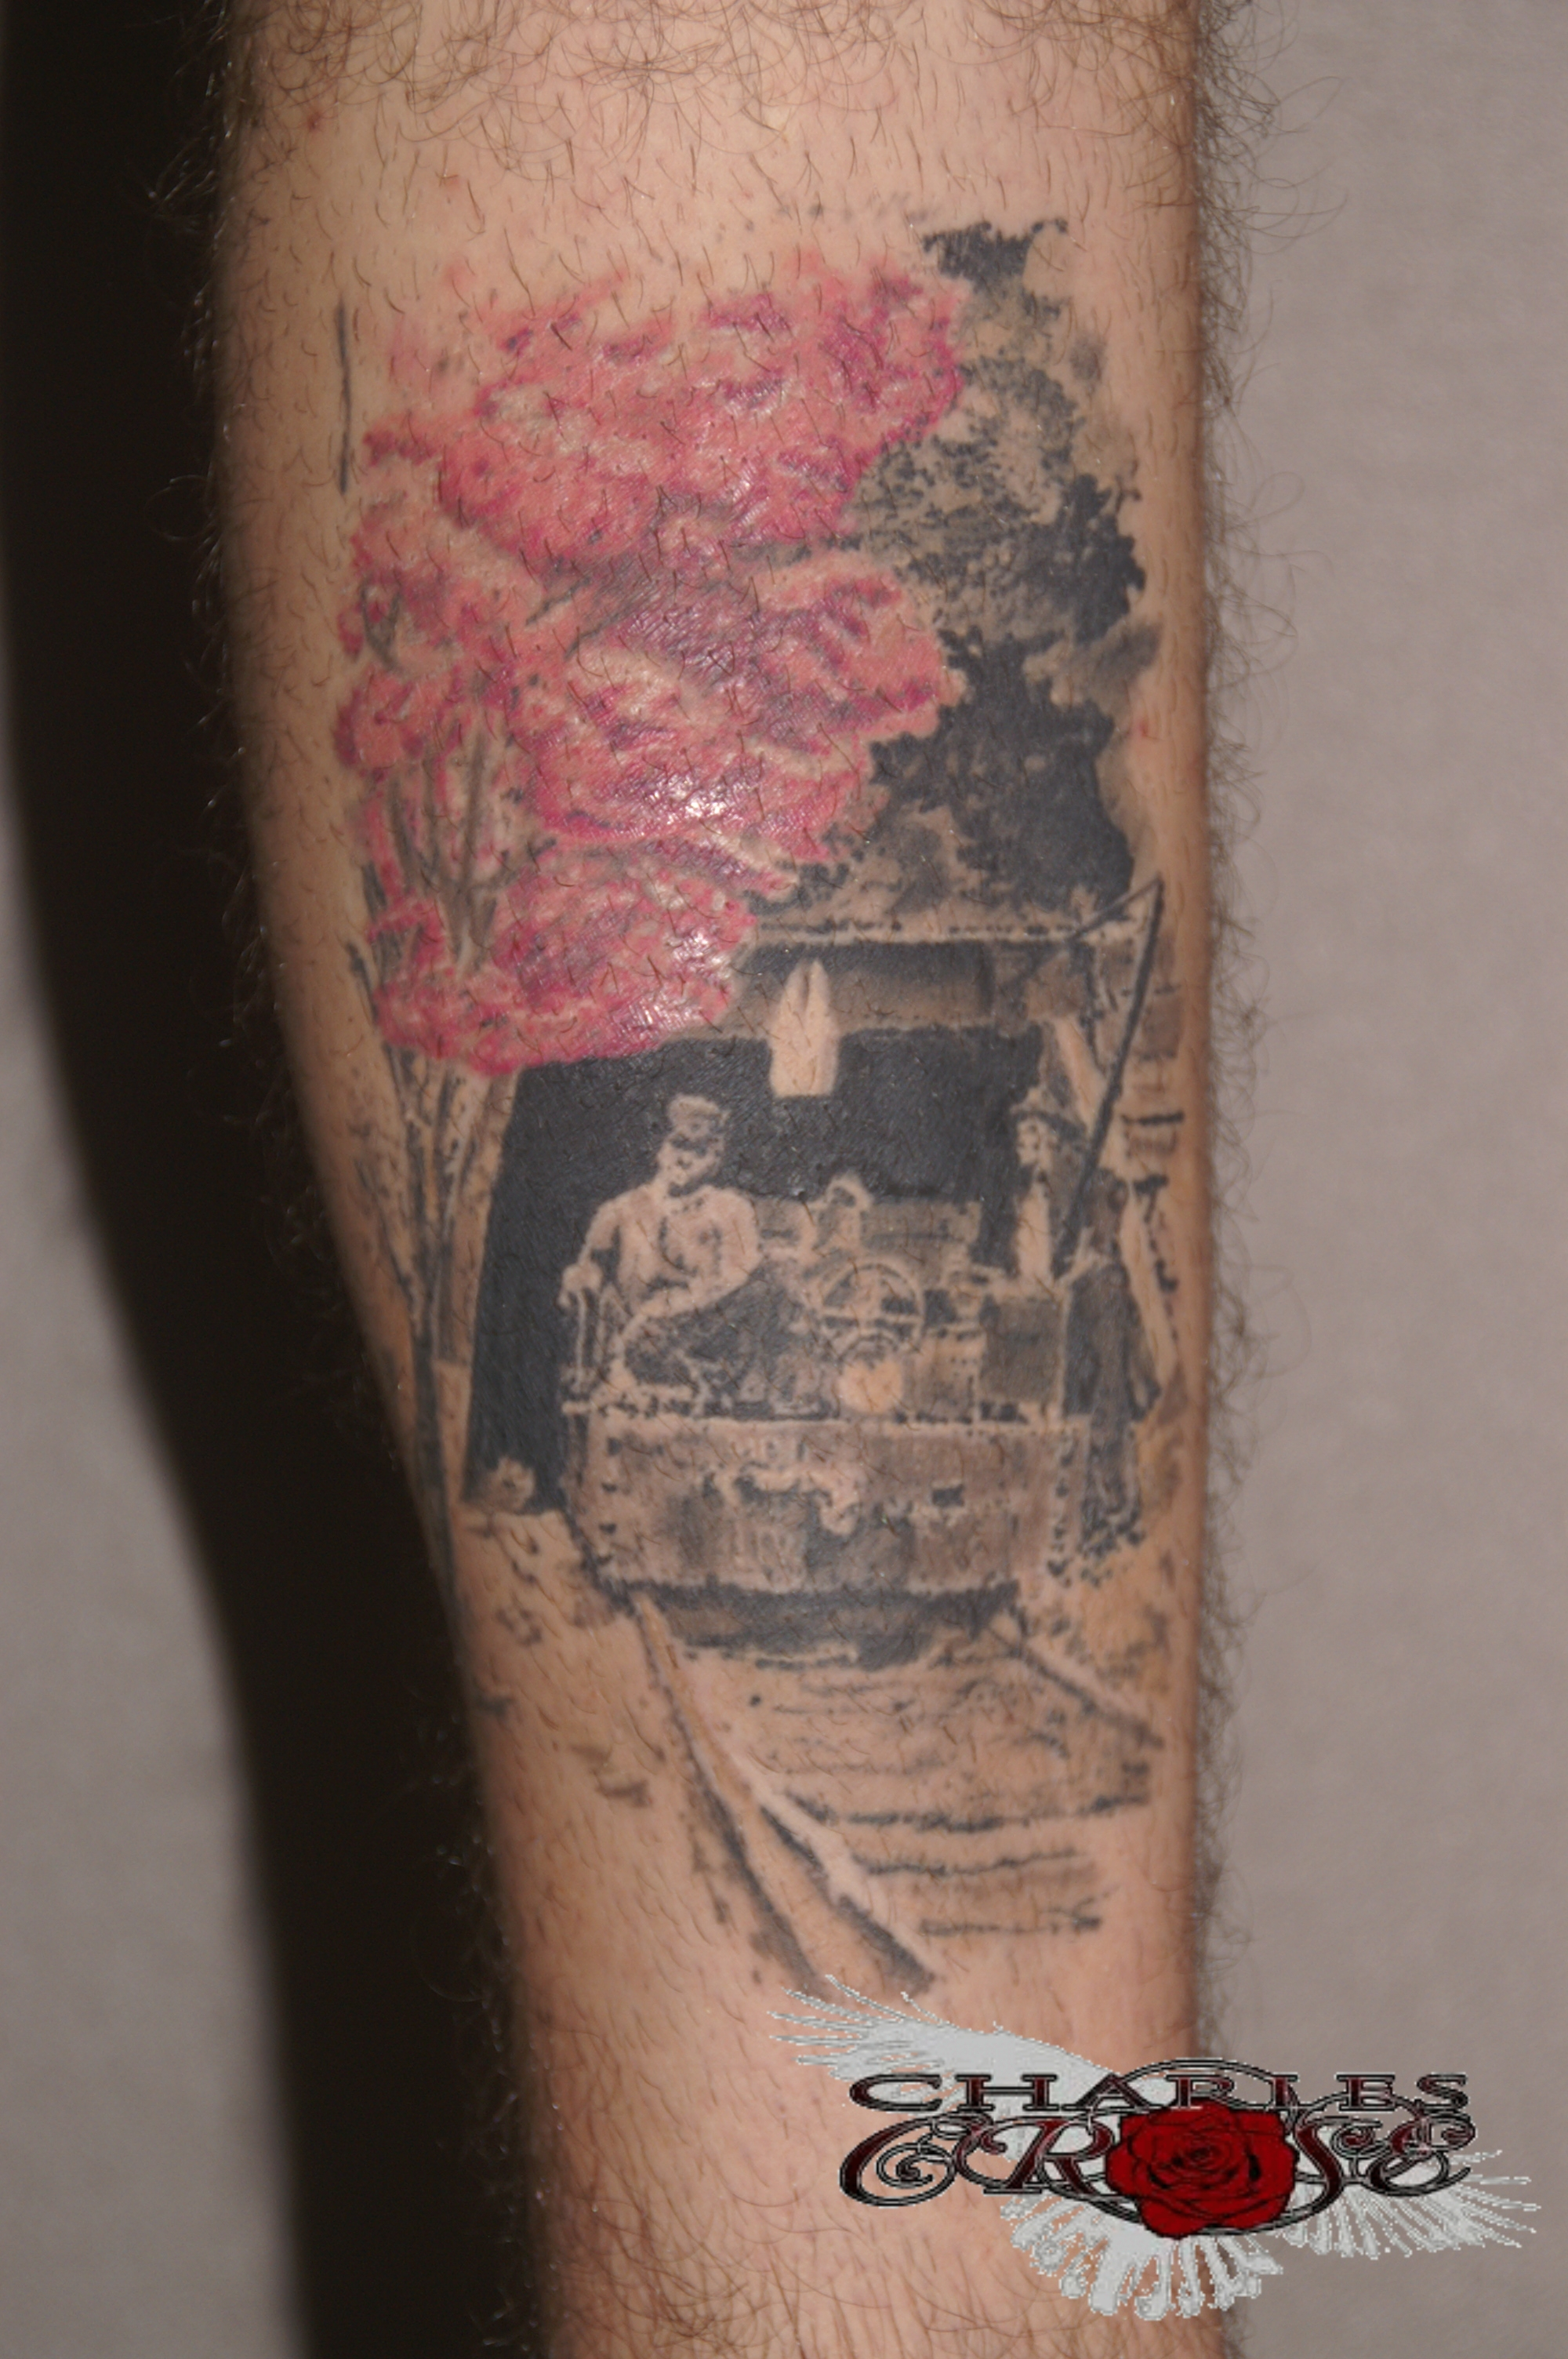 coal miner tattoos pictures to pin on pinterest tattooskid. Black Bedroom Furniture Sets. Home Design Ideas